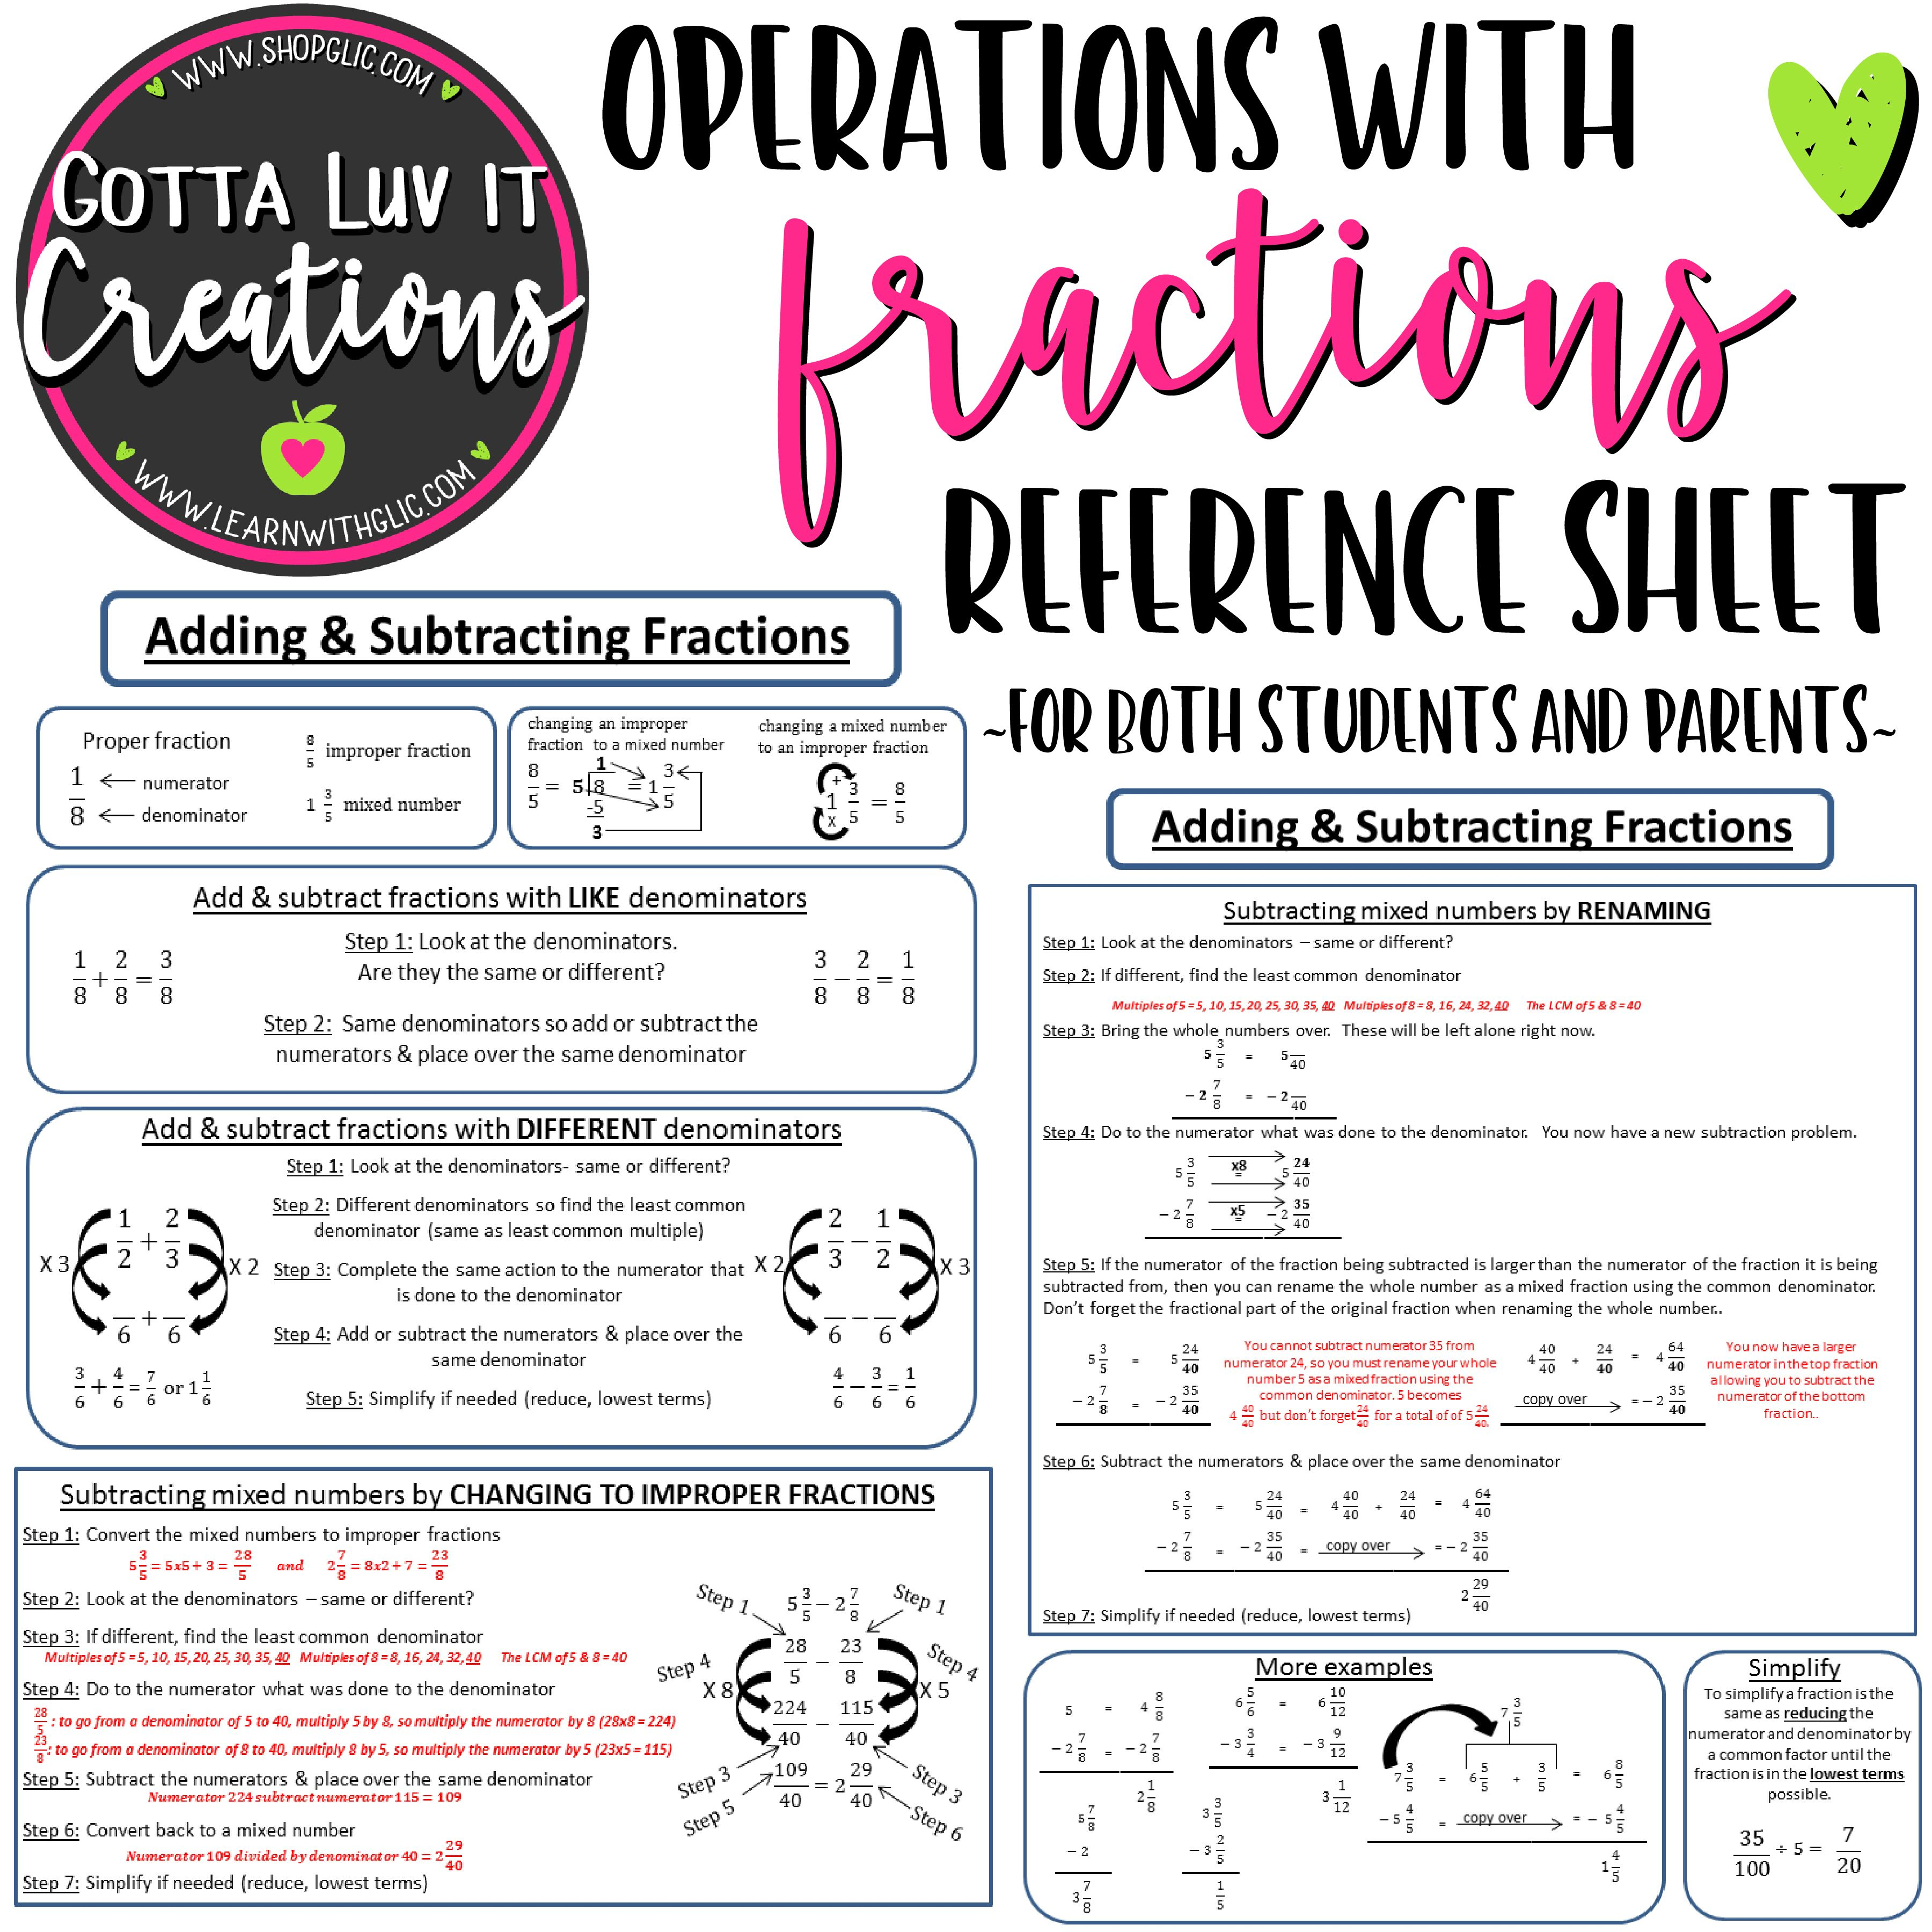 Operations With Fractions Student And Parent Reference